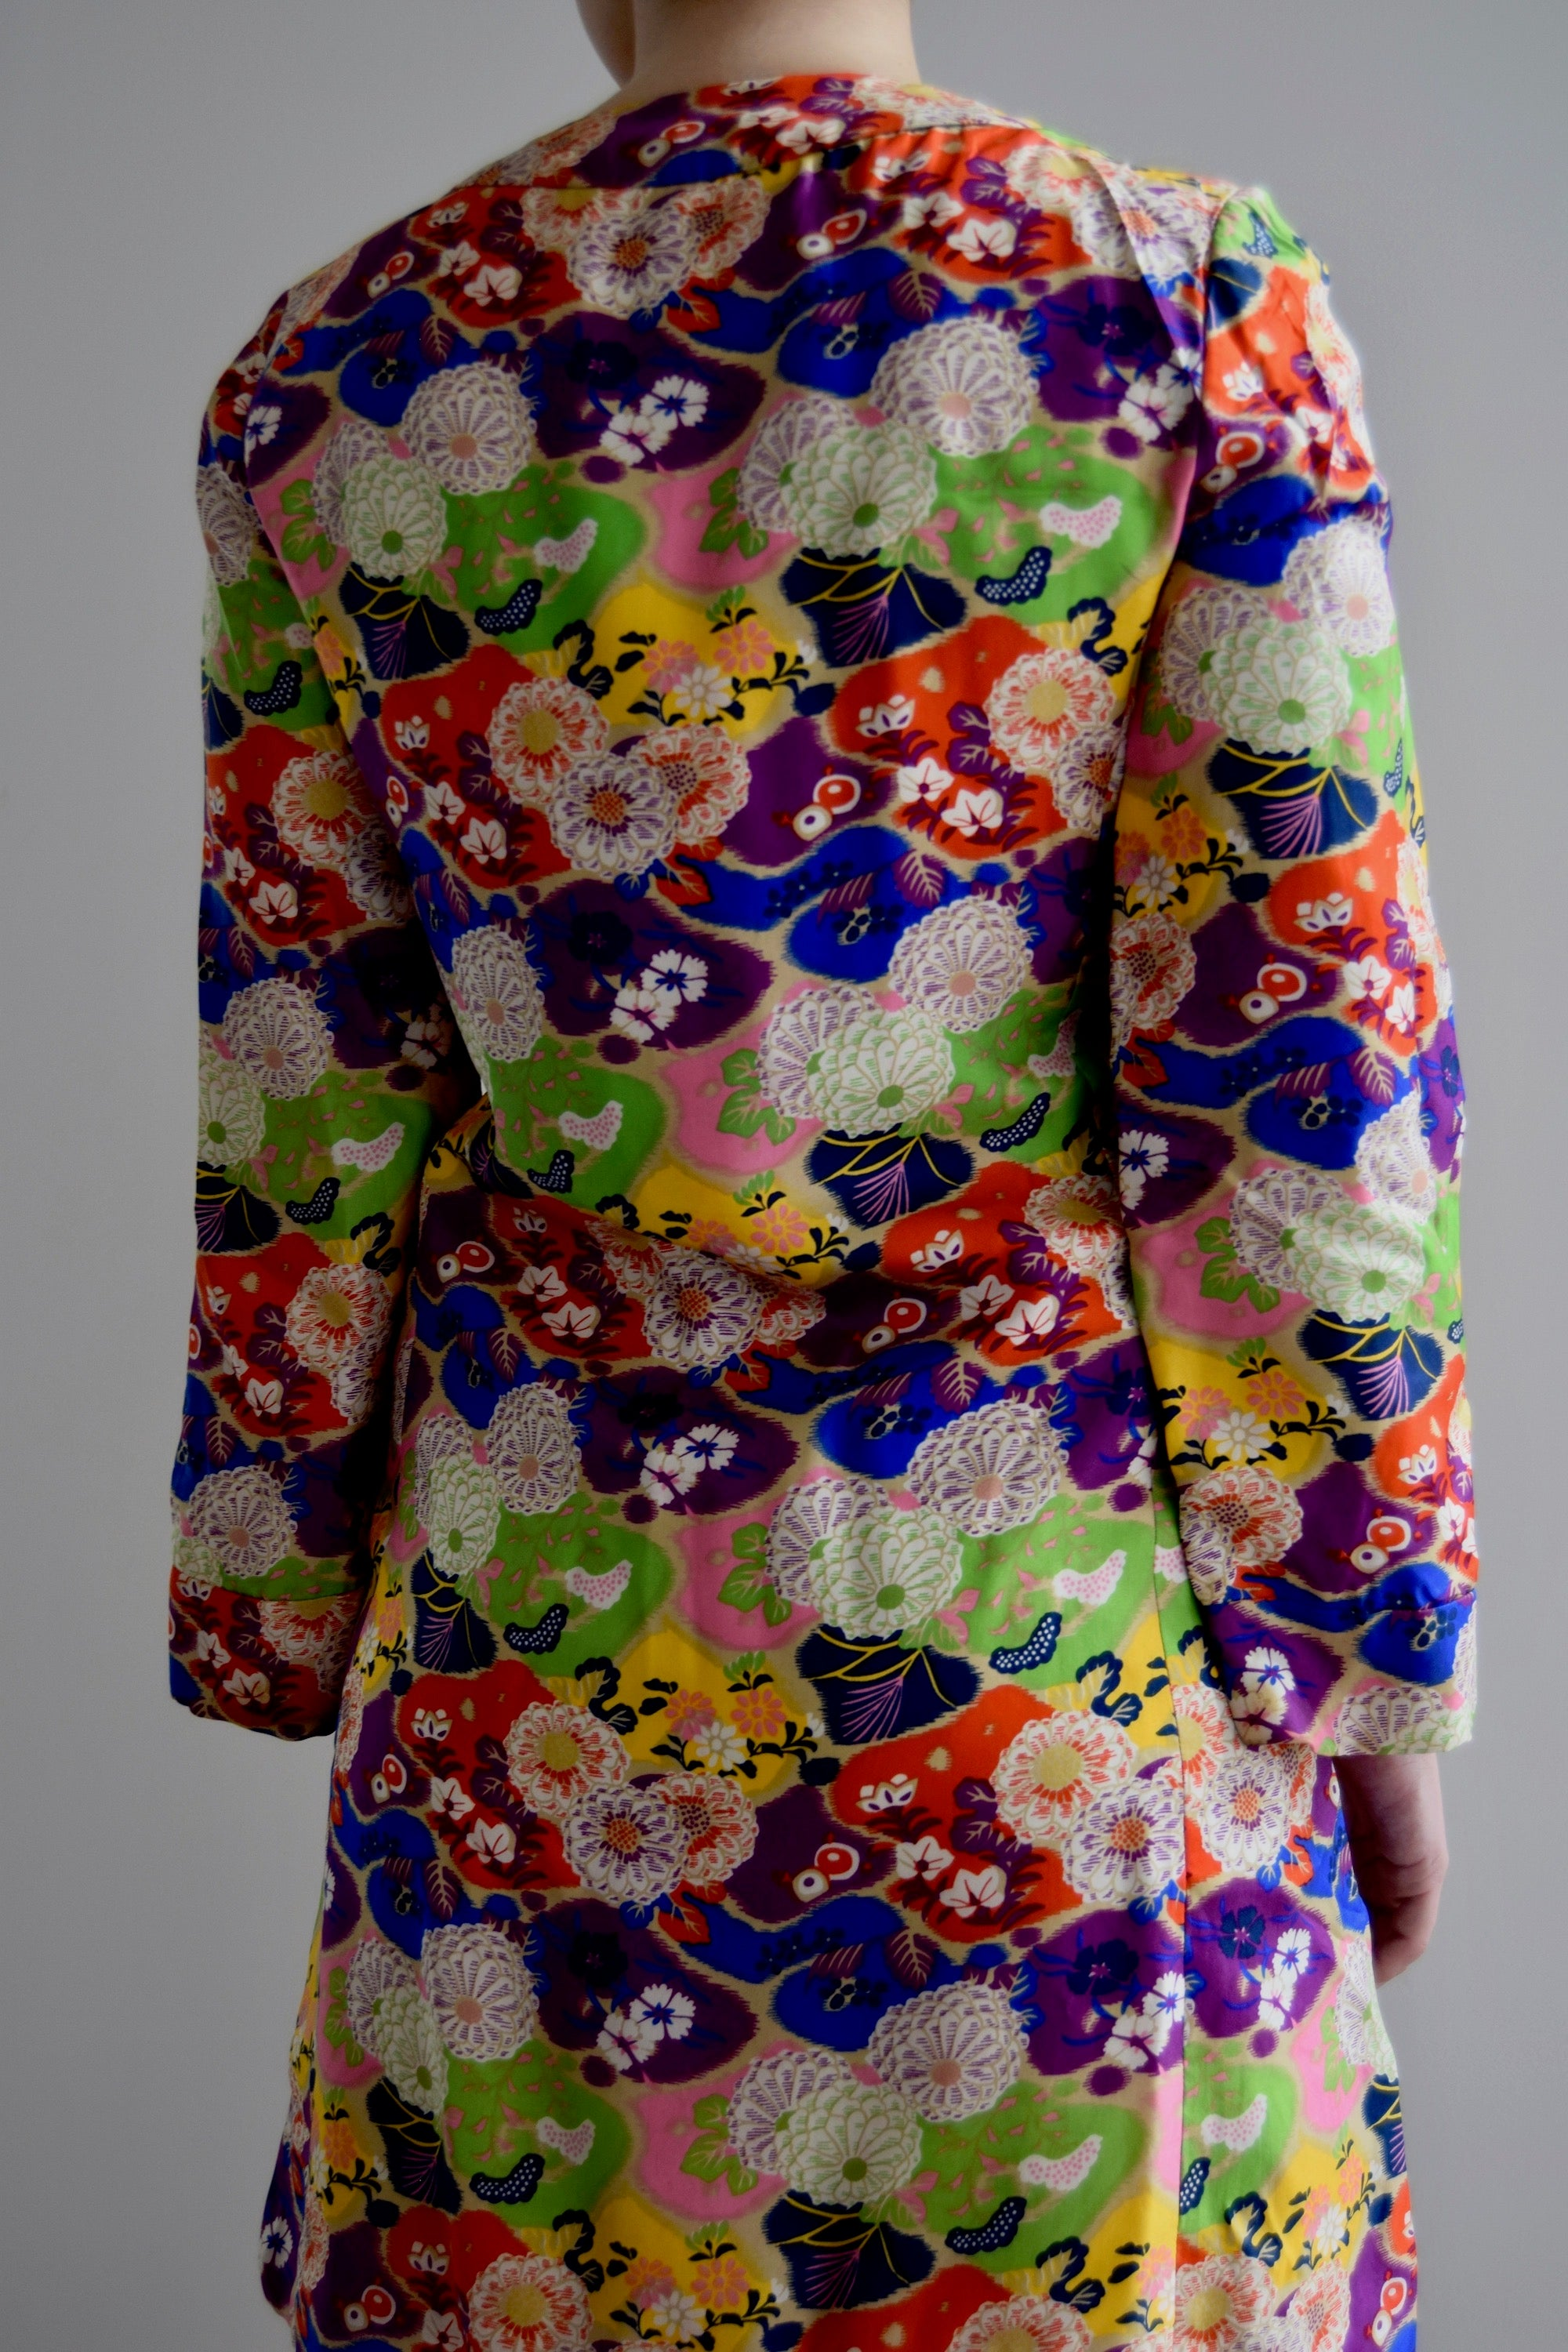 Vintage Silk Kimono Inspired Dress FREE SHIPPING TO THE U.S.